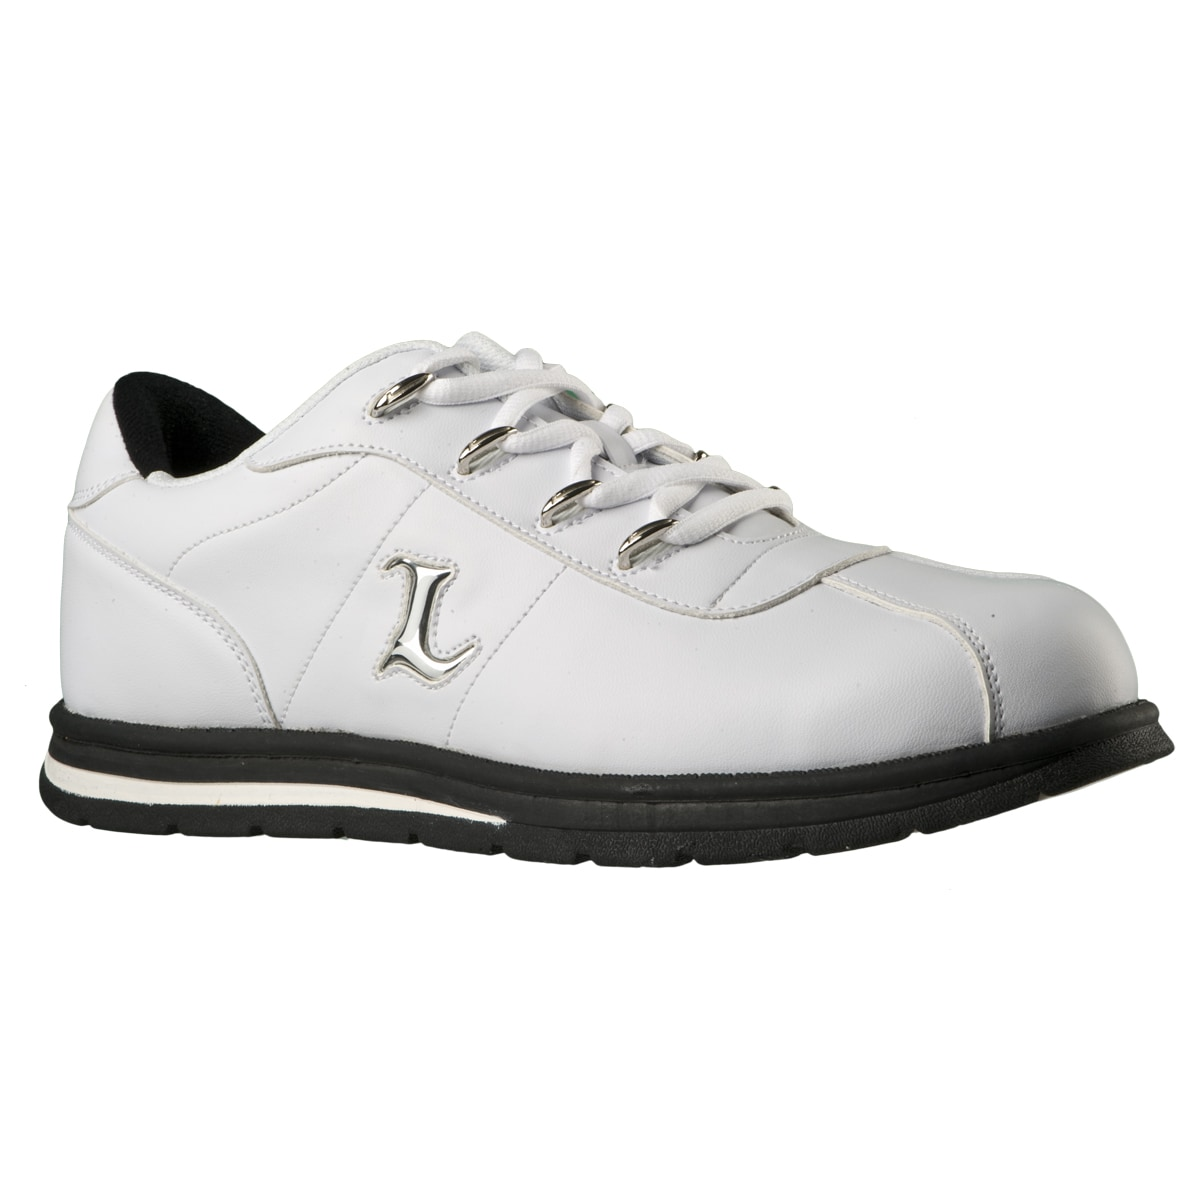 Lugz Men's Zrocs DX Oxford Shoes - Thumbnail 0